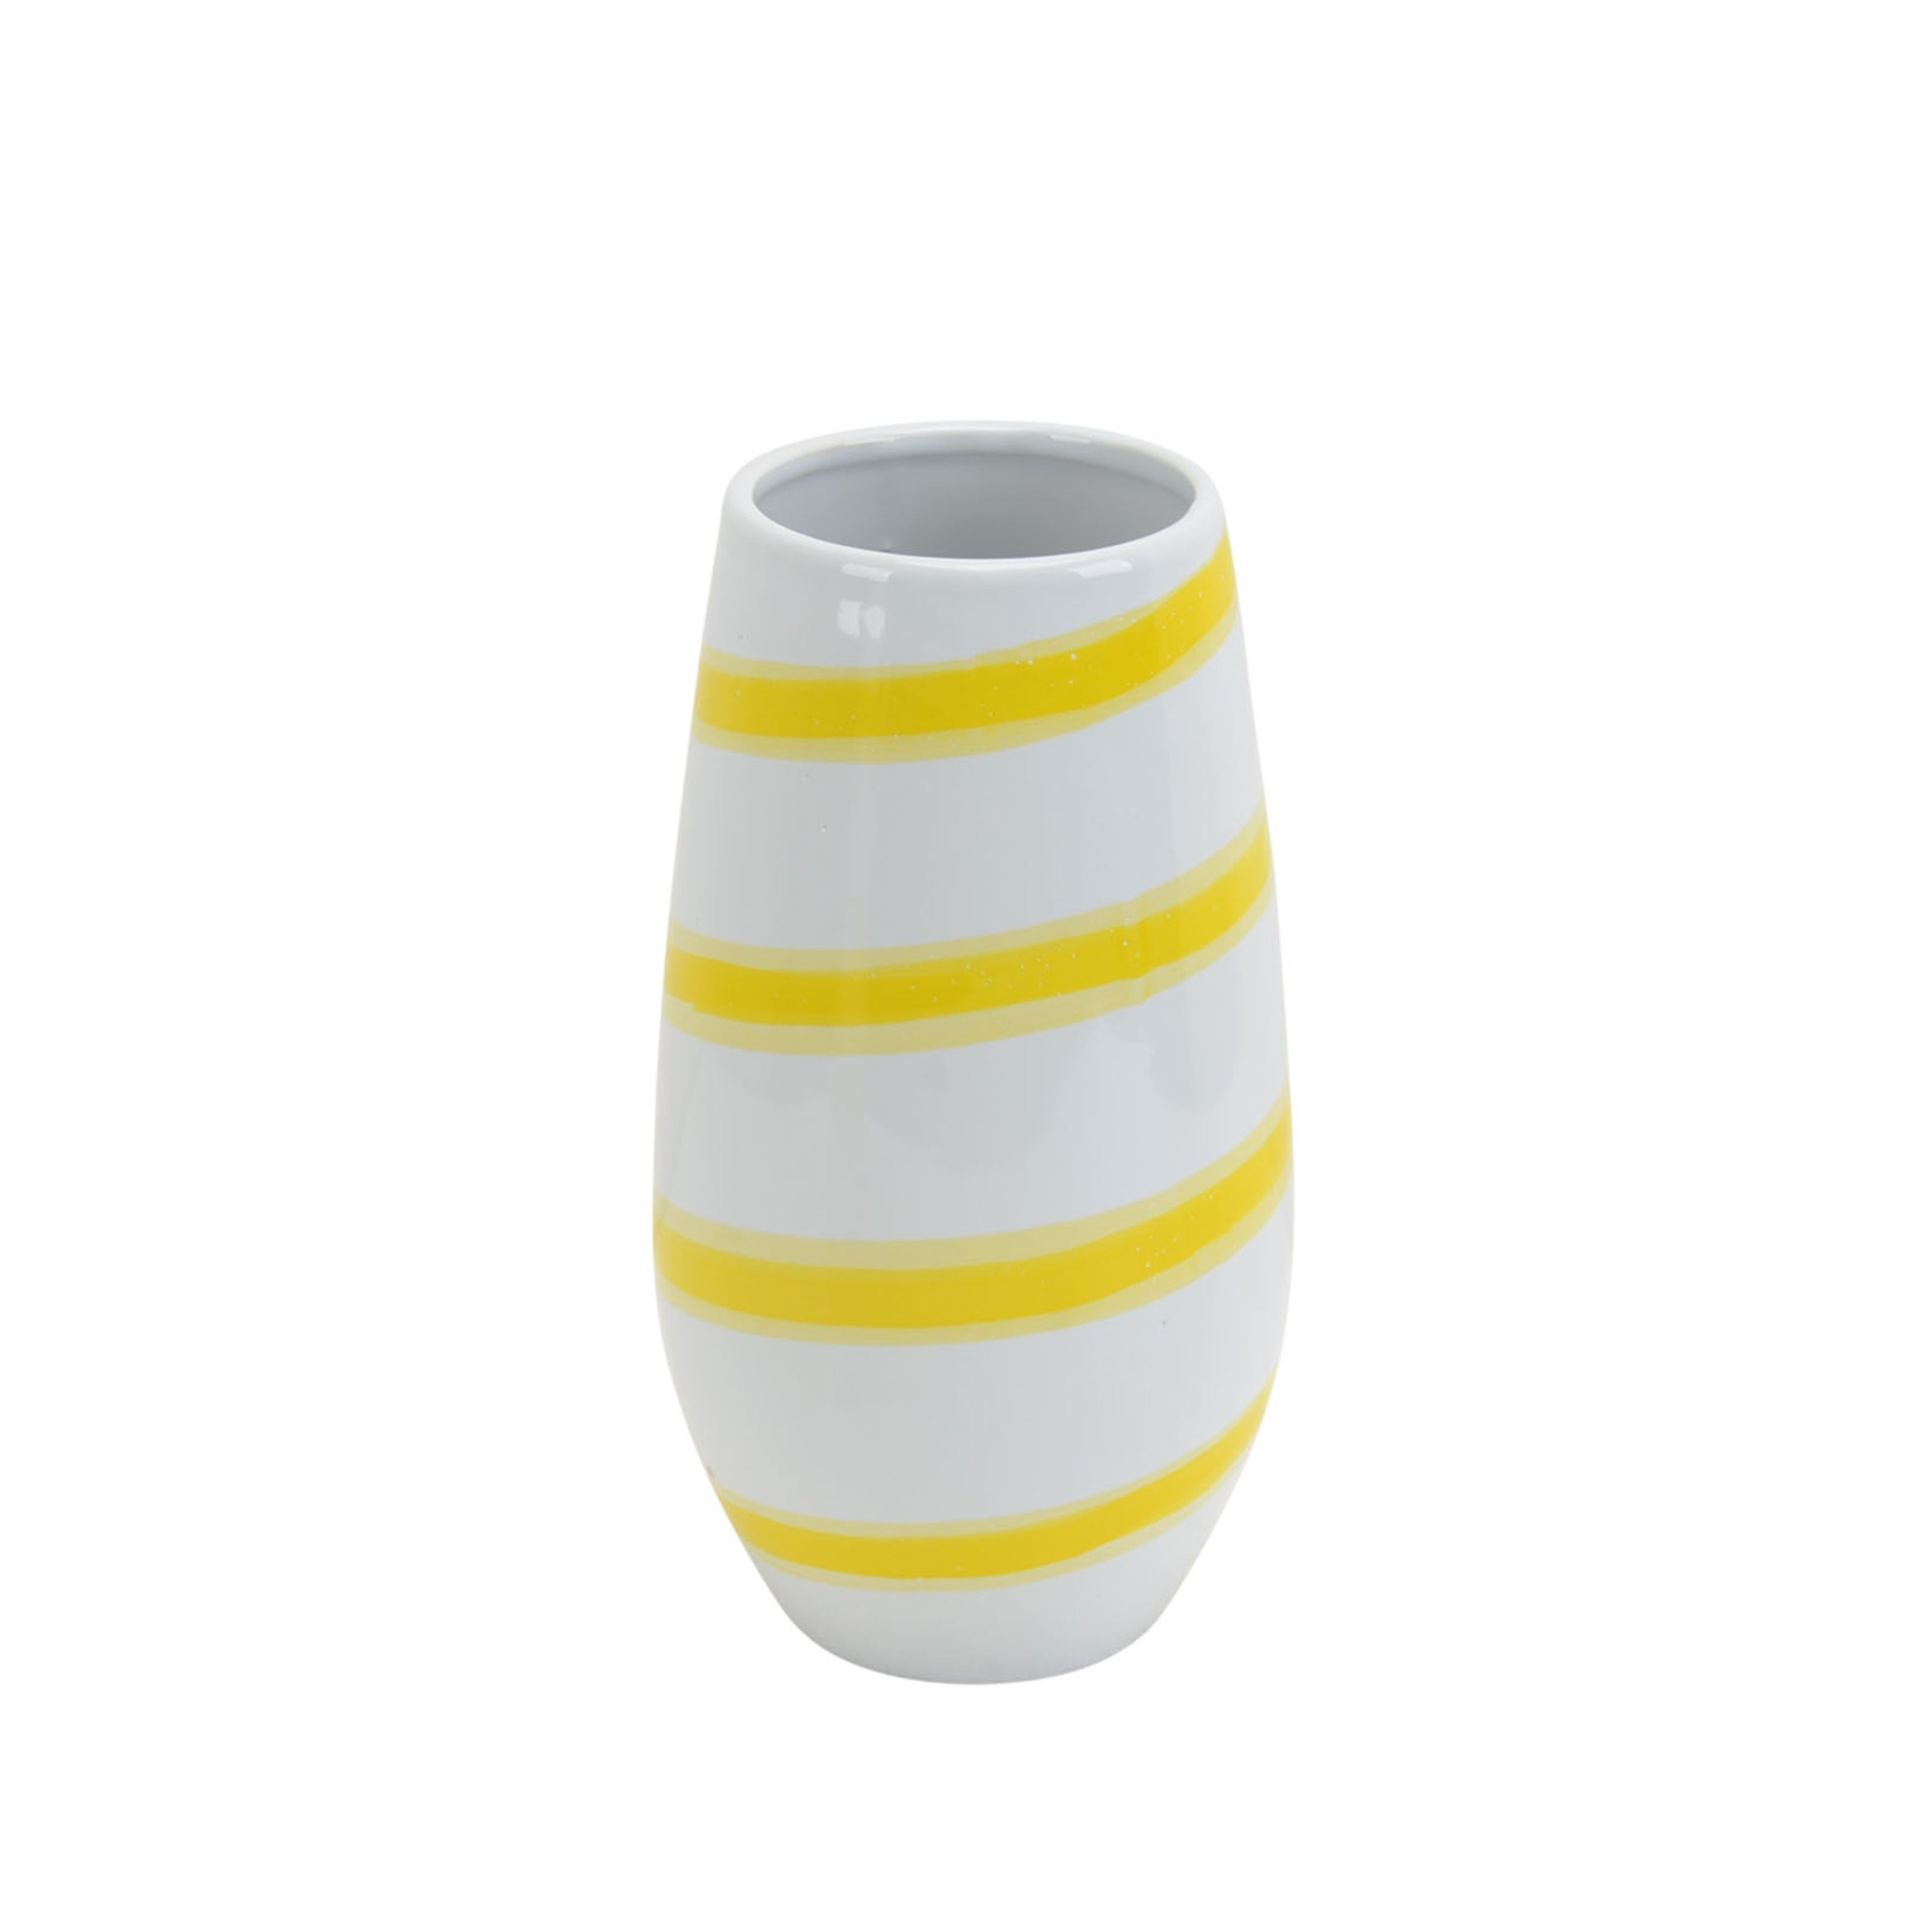 Decorative Ceramic Vase With Stripe Design Yellow And White Overstock 27430174